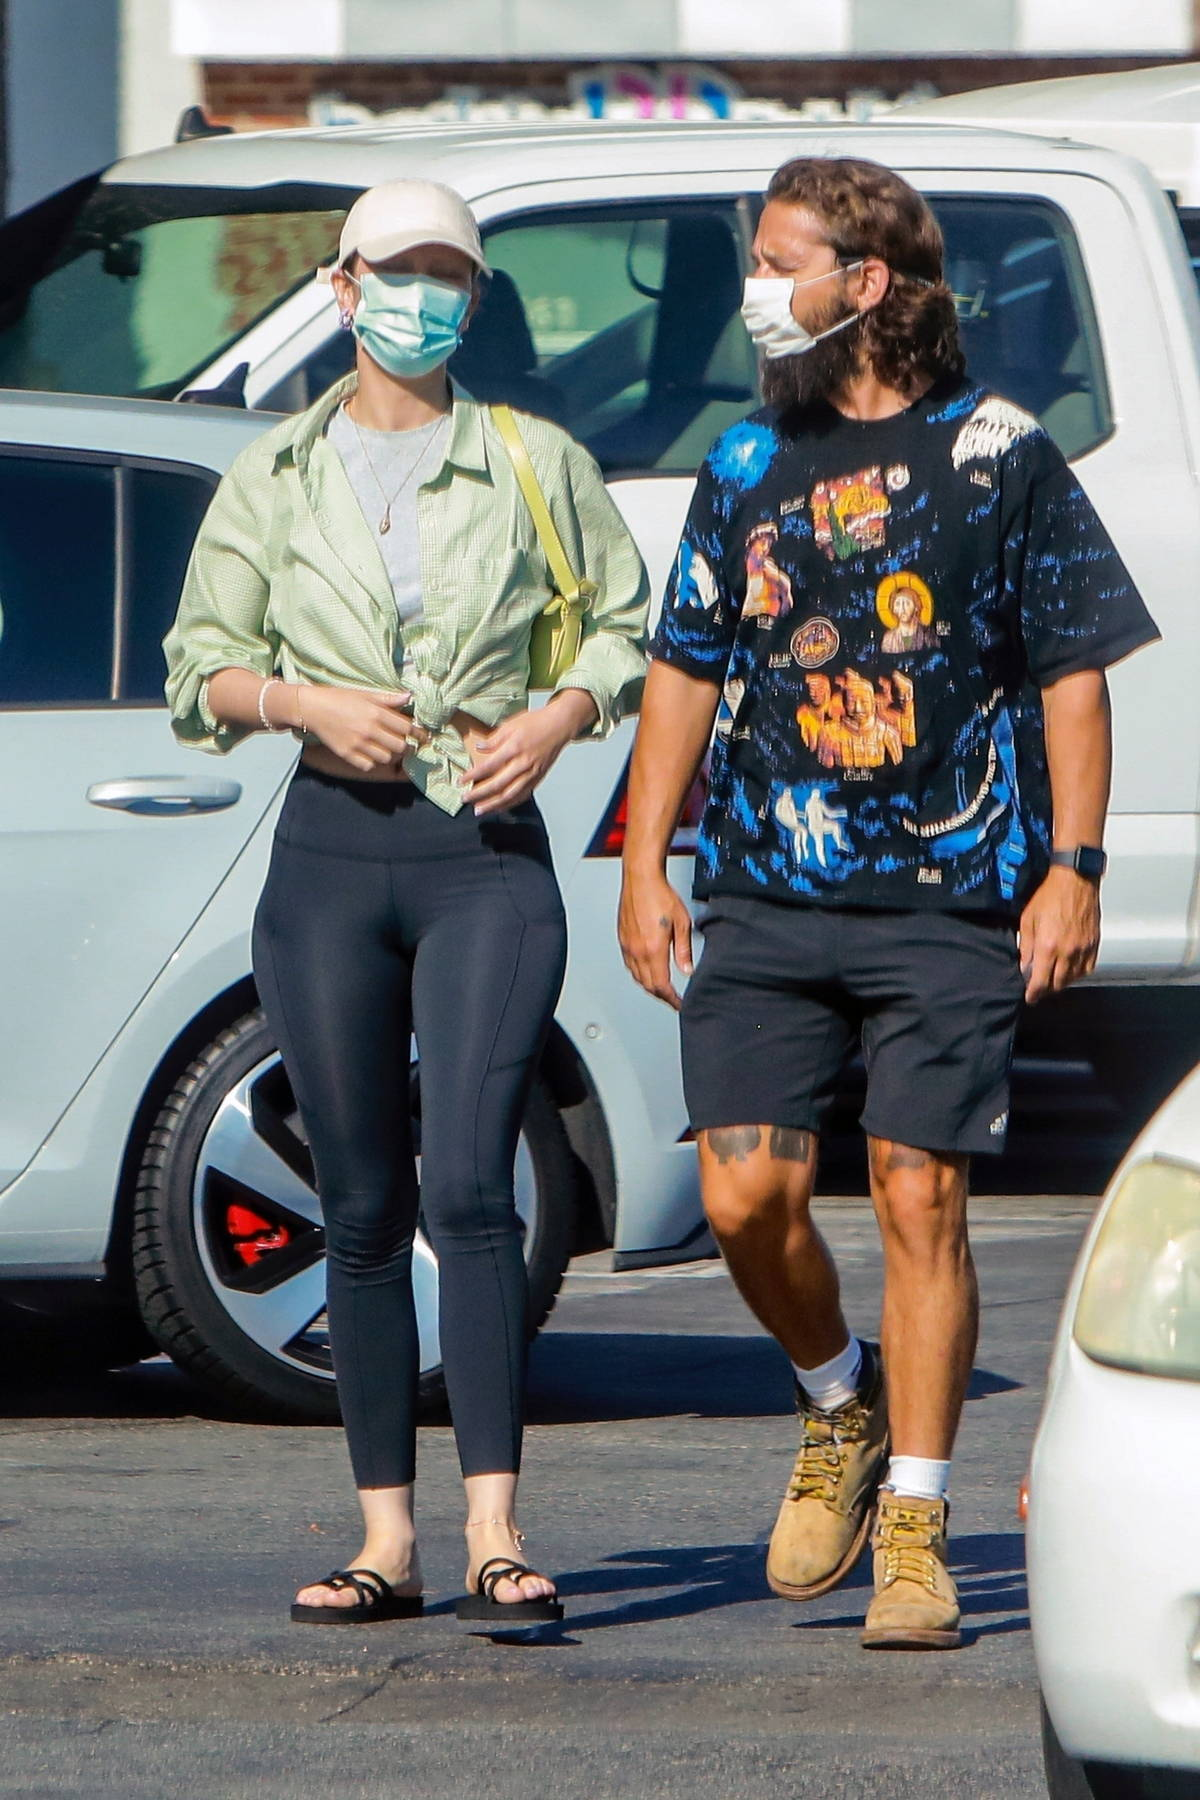 Mia Goth and Shia LaBeouf step out for some shopping at Pavilions and a camping store in Pasadena, California